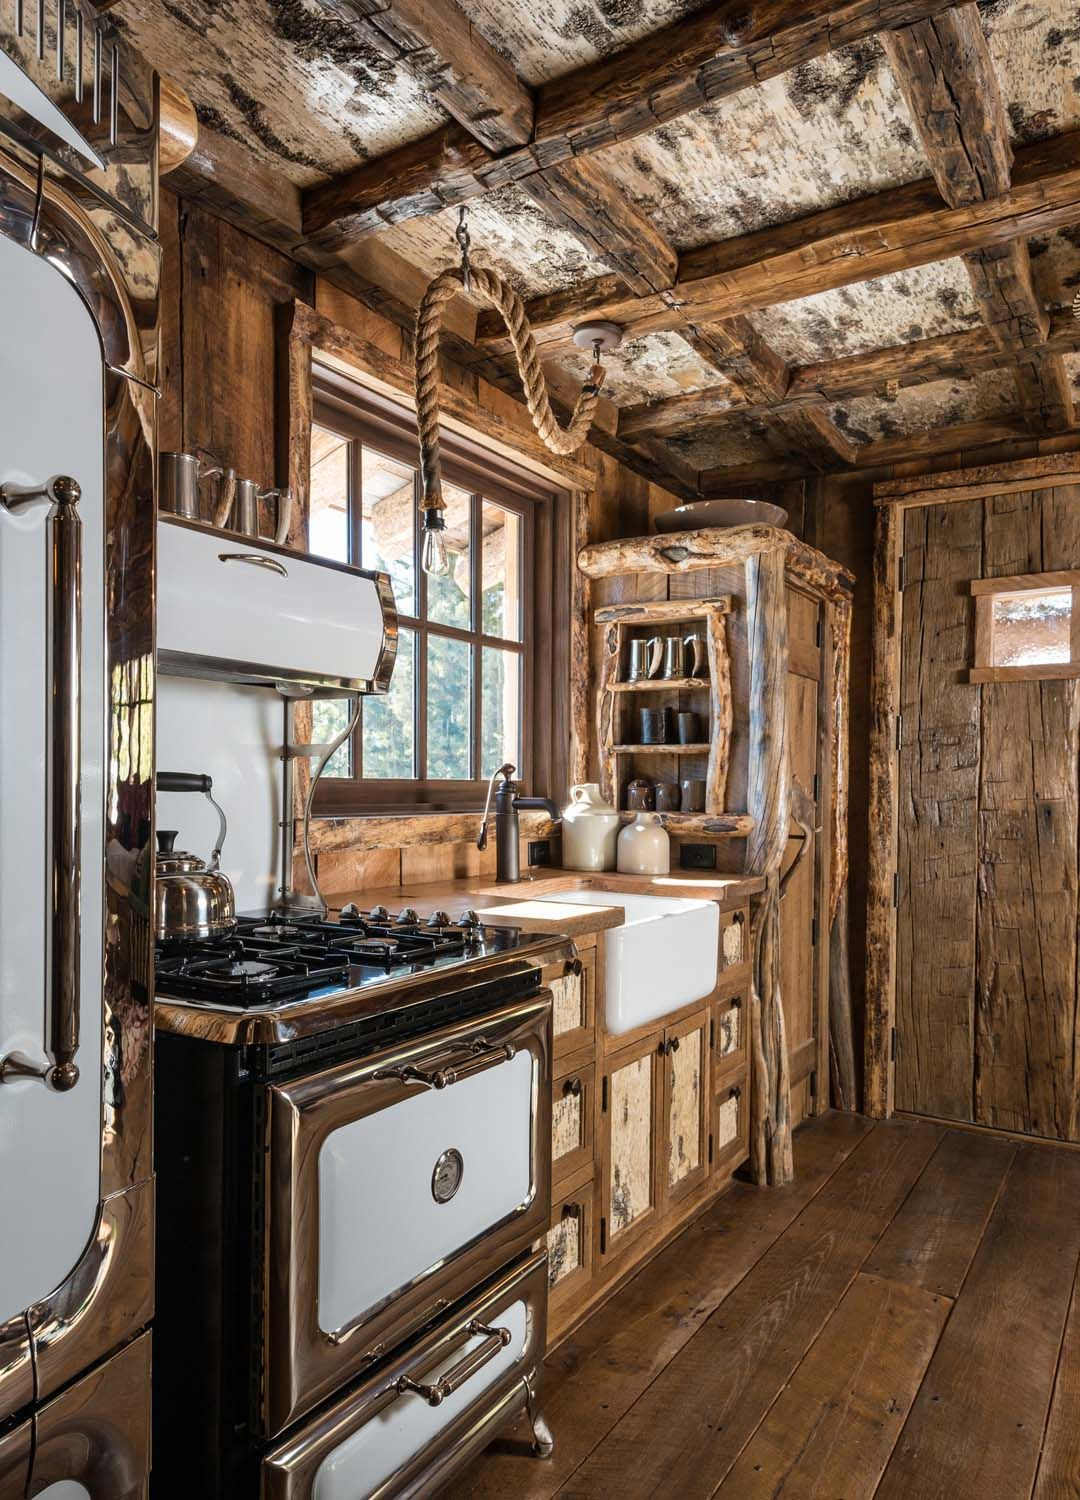 "30"" Heartland Classic Range in rustic country kitchen"